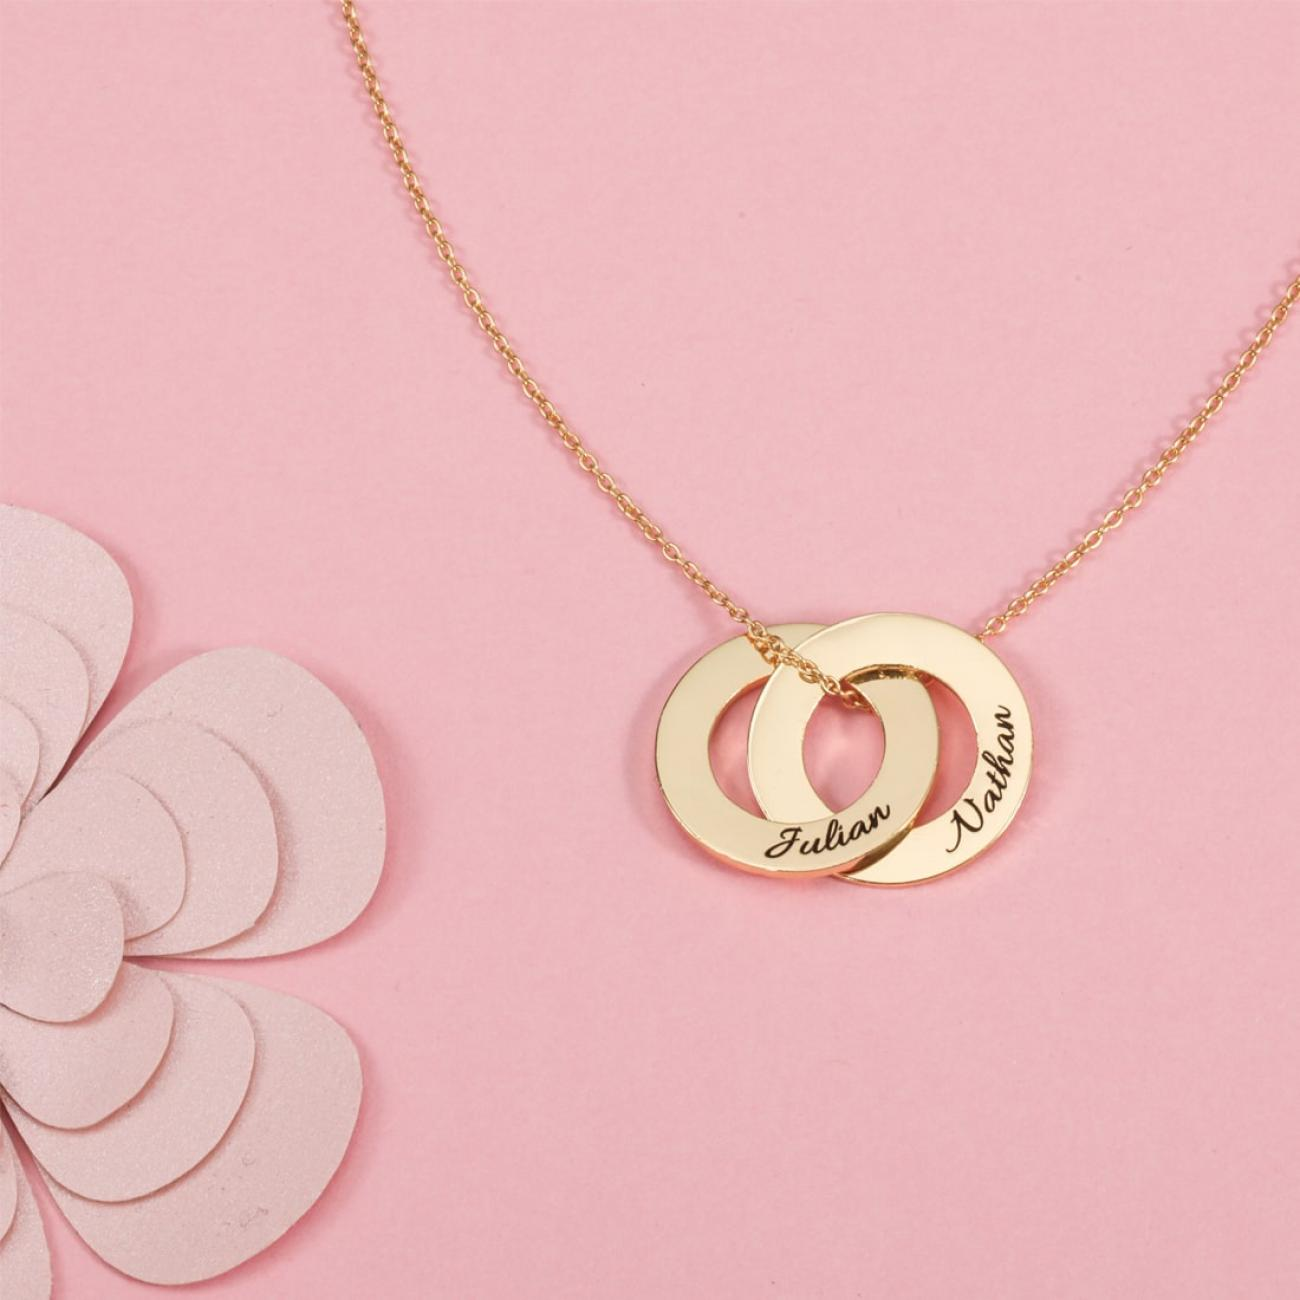 2 rings necklace with engraving